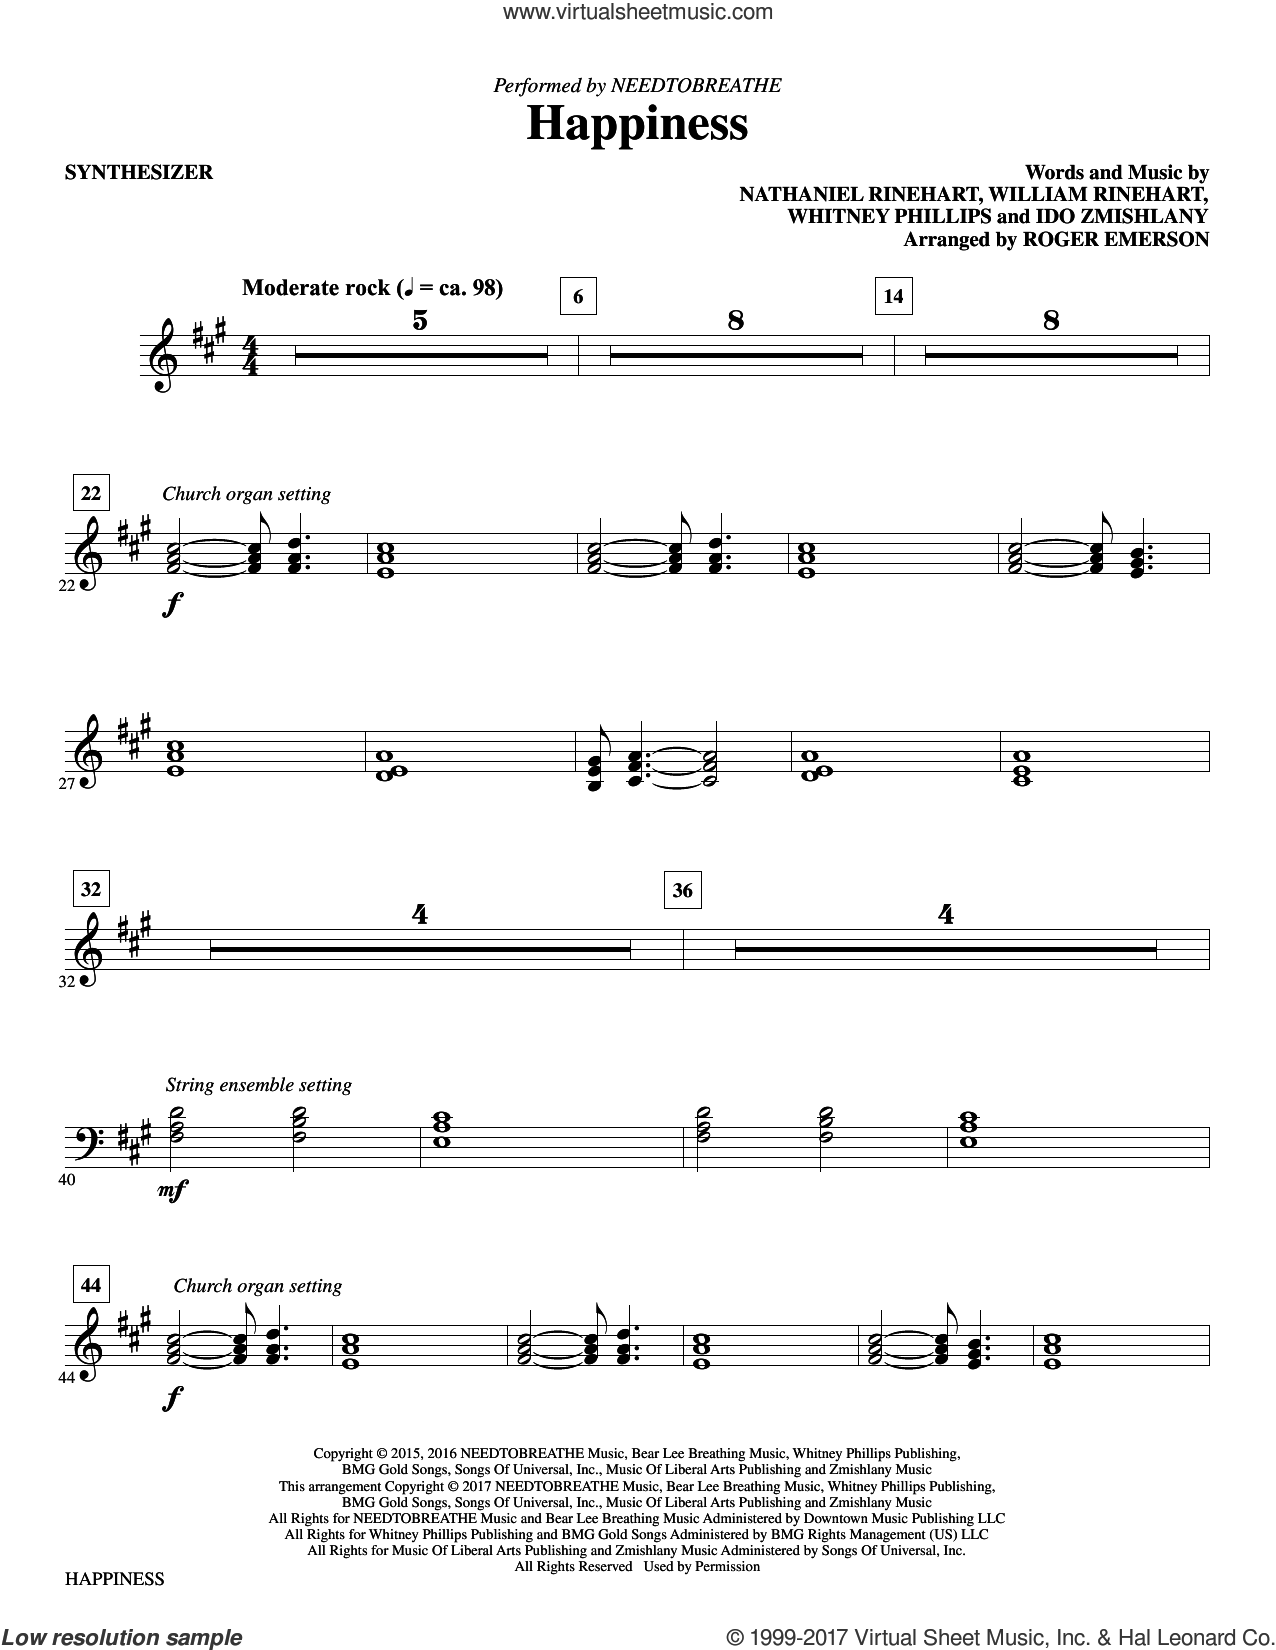 Happiness (complete set of parts) sheet music for orchestra/band by Roger Emerson, Ido Zmishlany, Nathaniel Rinehart, NEEDTOBREATHE, Whitney Phillips and William Rinehart, intermediate. Score Image Preview.